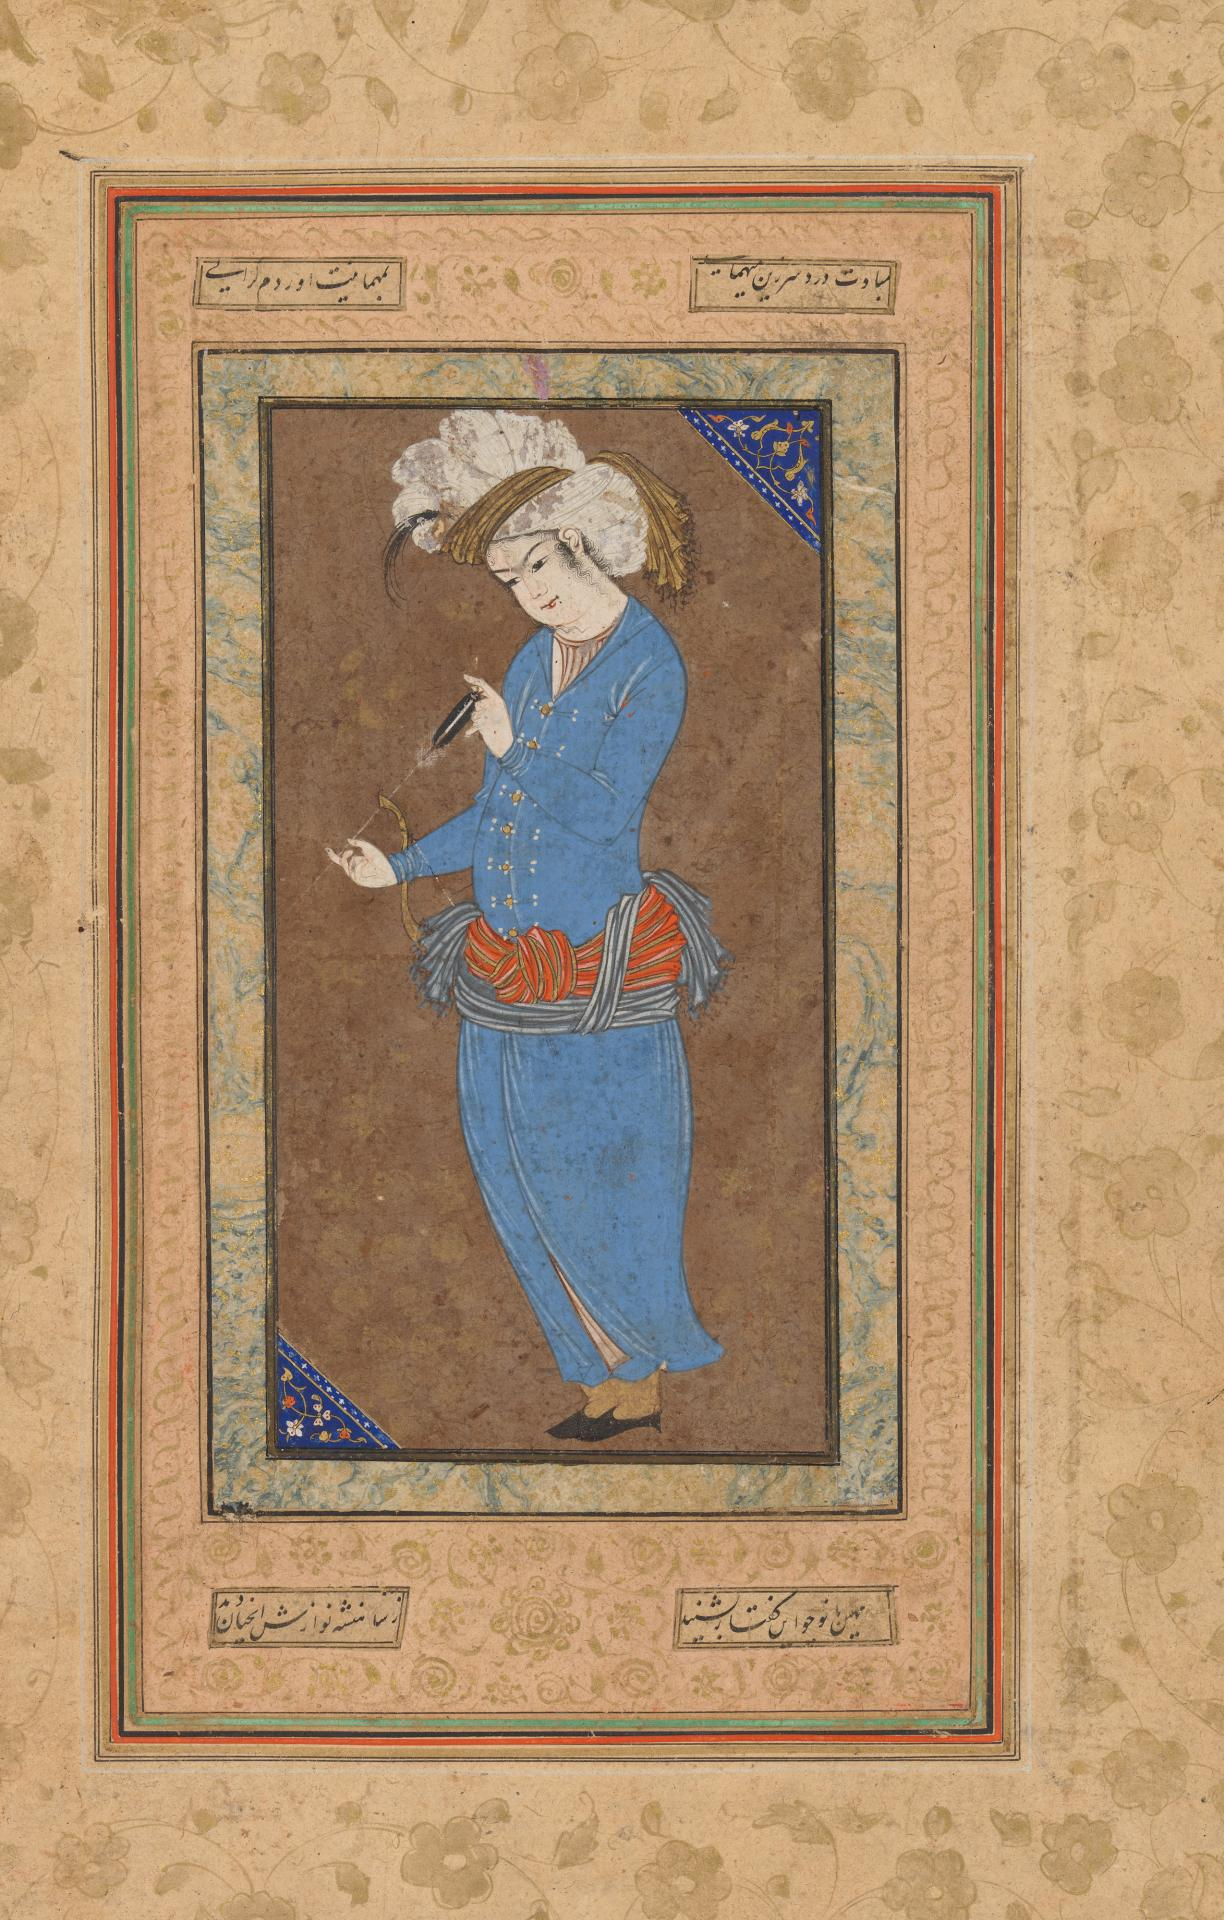 PERSIAN Portrait of a prince examining an arrow (late 16th century-early 17th century)